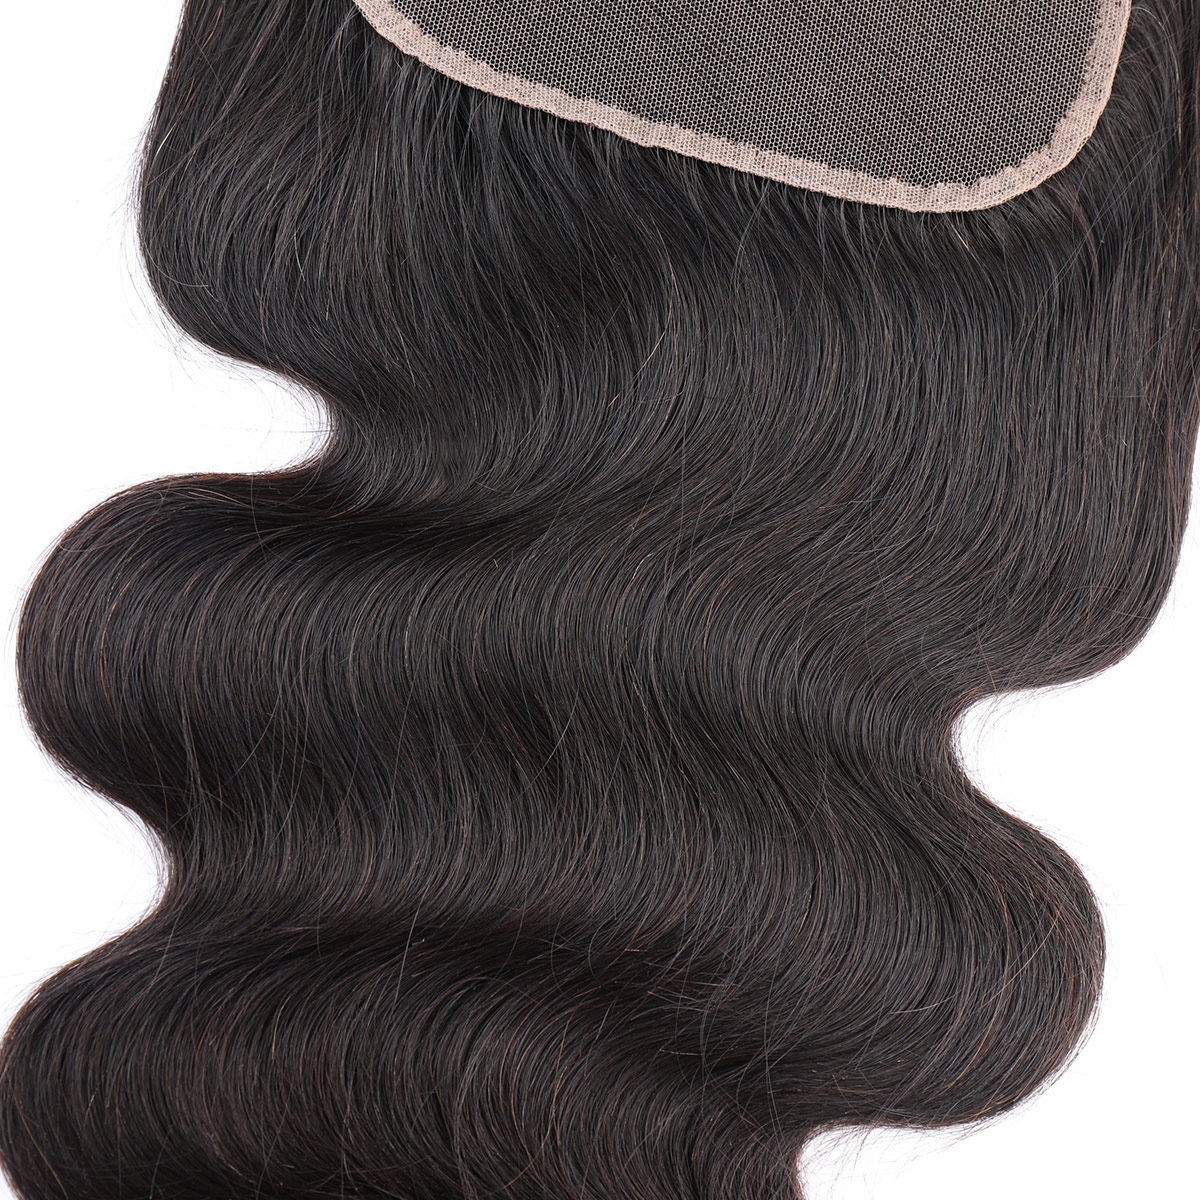 Cheap wholesales virgin human hair 6x6 lace closure body wave closure with baby hair